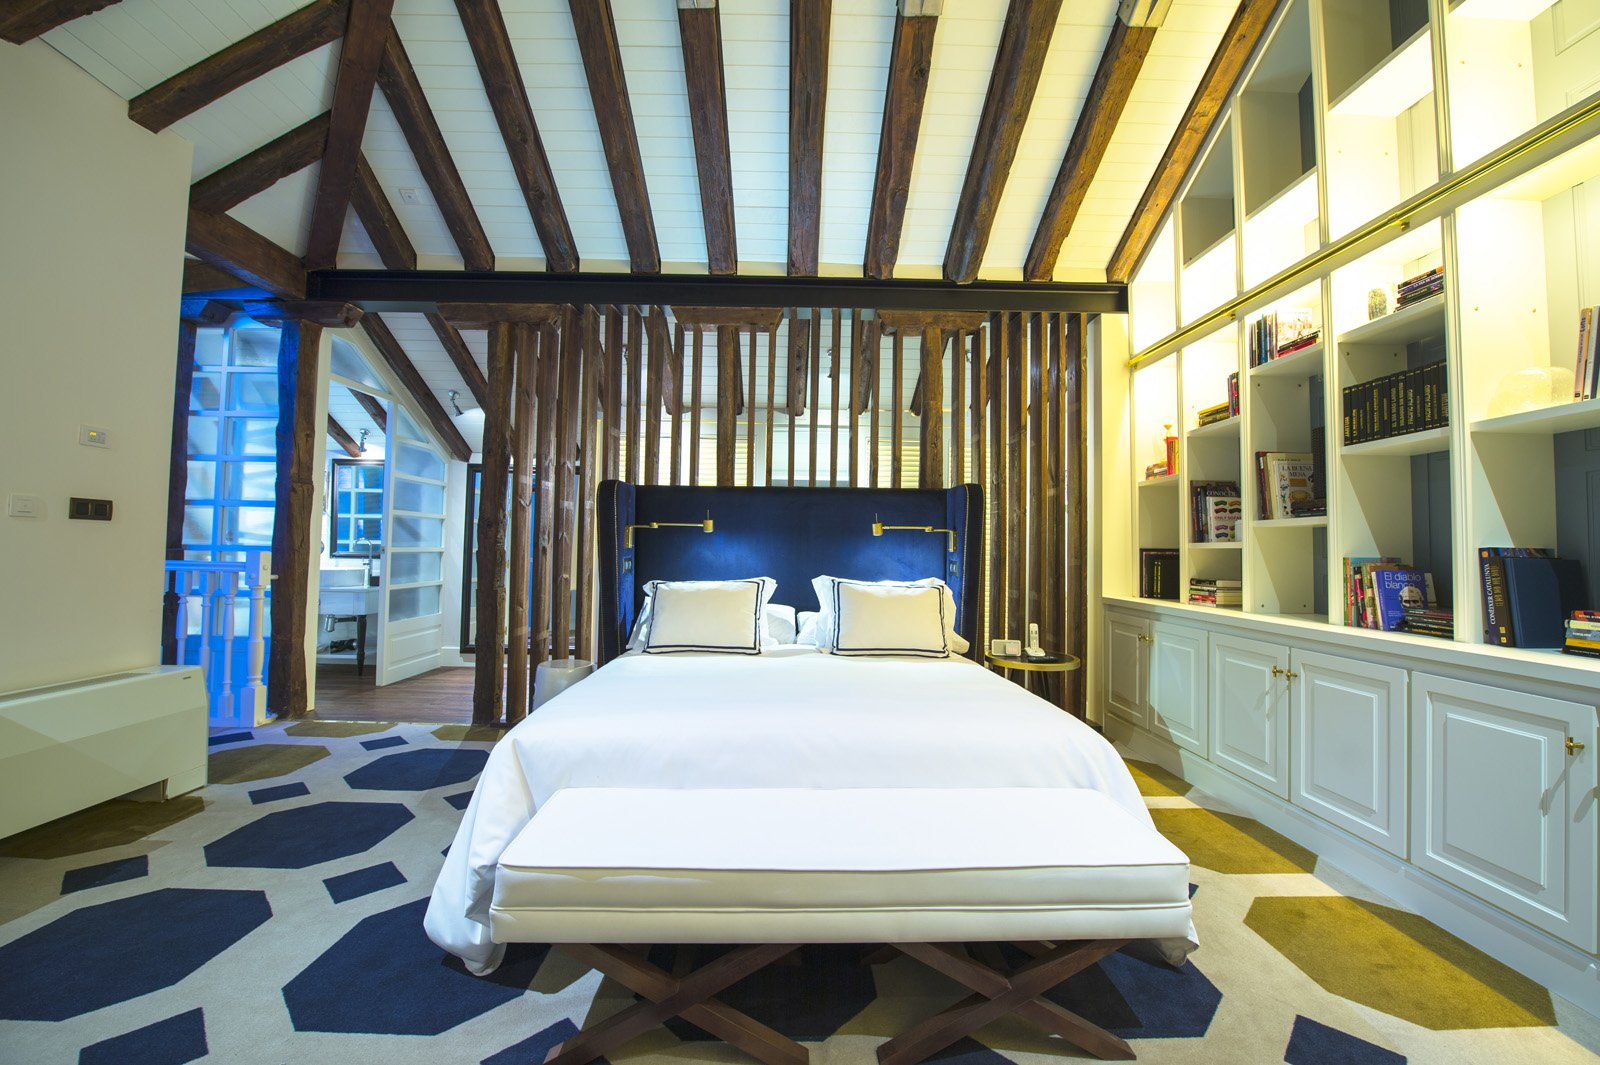 El only you boutique hotel madrid inaugura su proyecto de for Hotel only you madrid